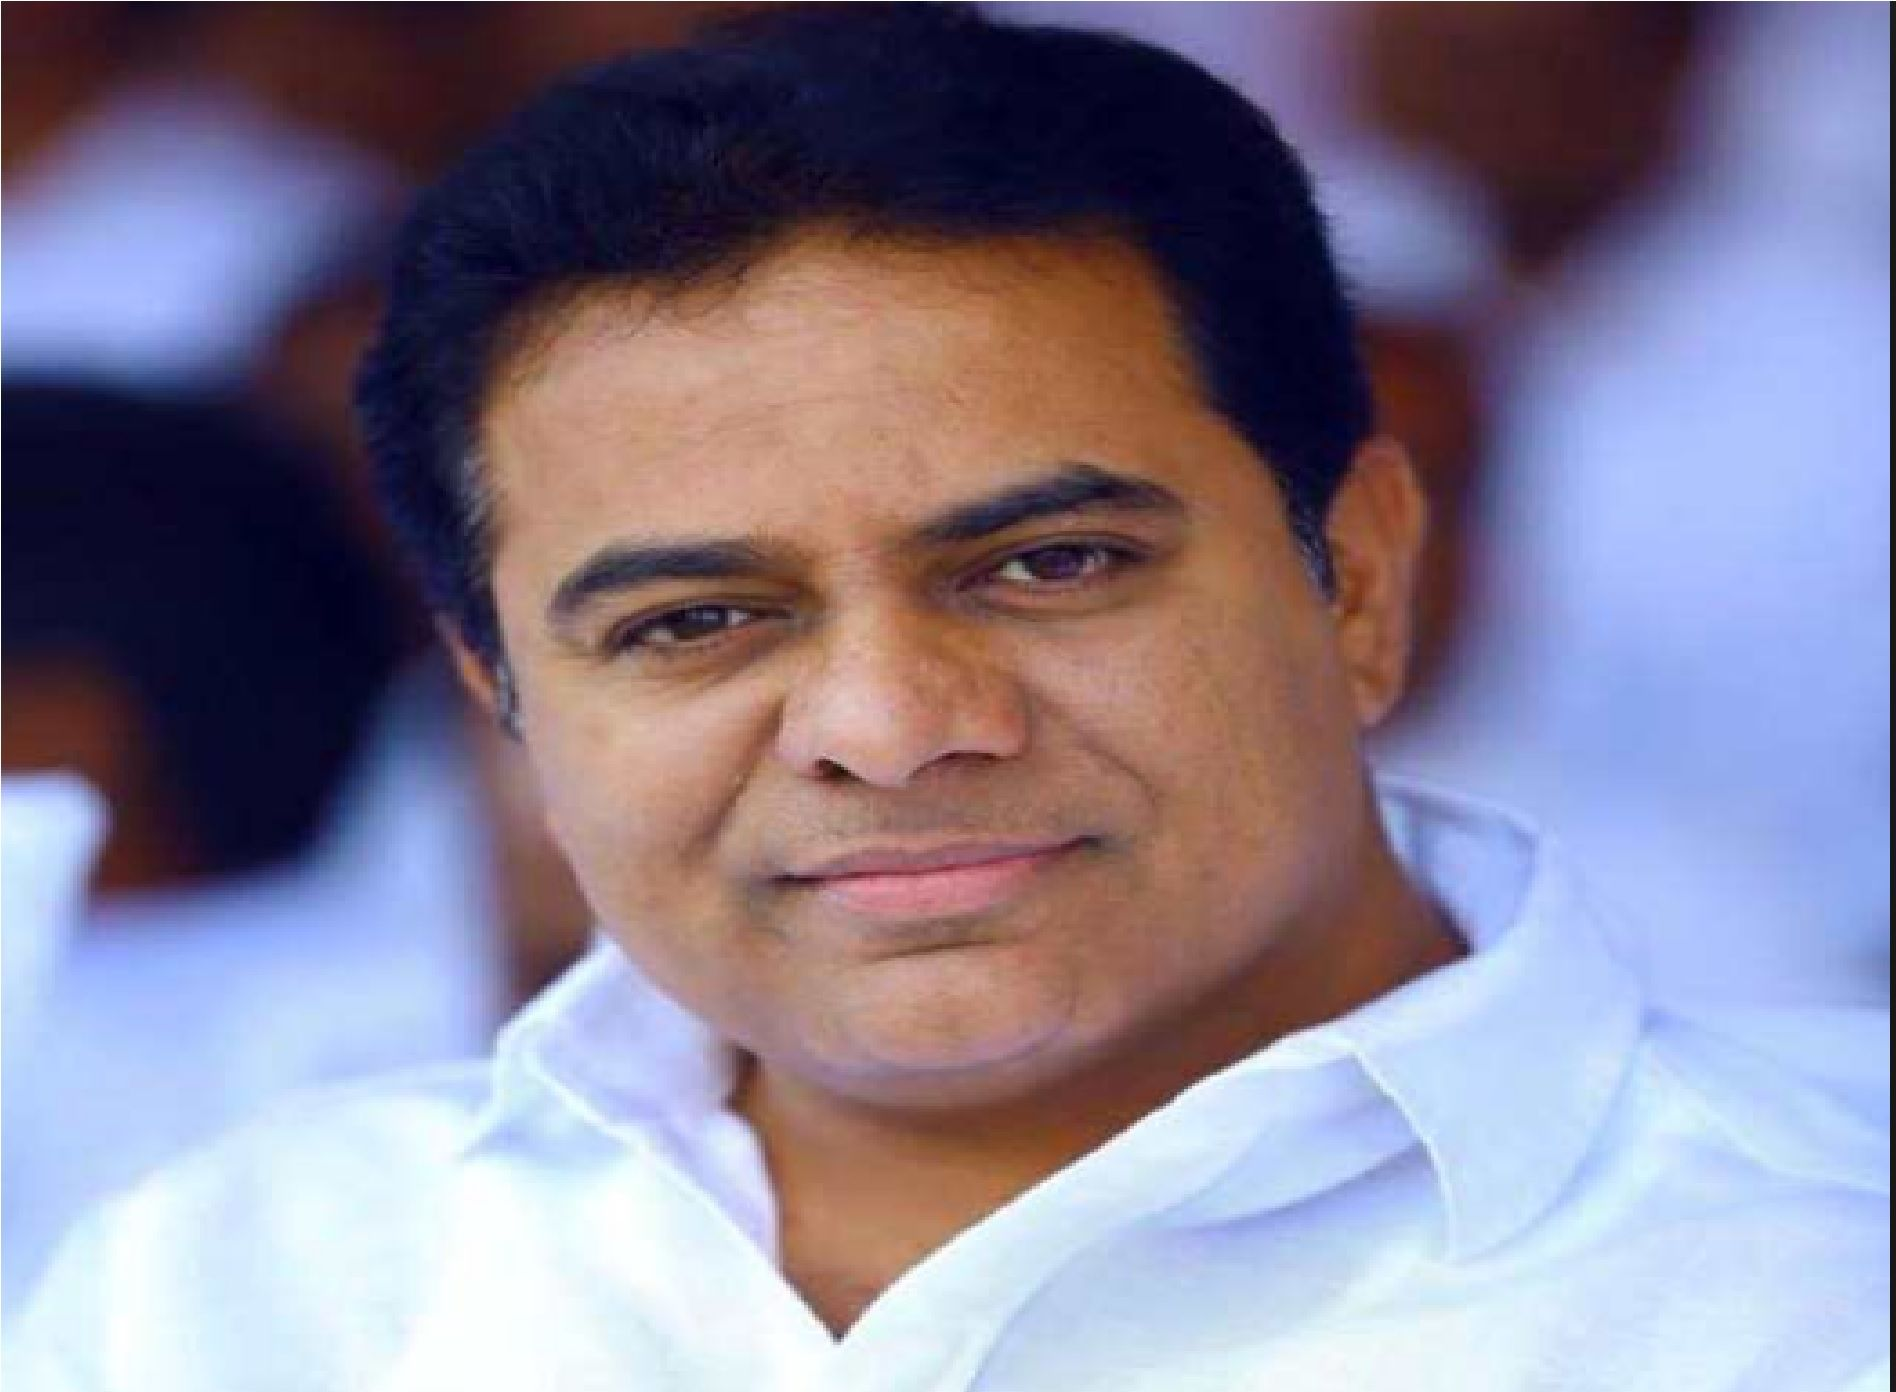 Will agitate against mamata banerjee for attacking our workers bjp the indian express - Telangana Government Plans To Build Its Own State Specific Nri Ministry The First State